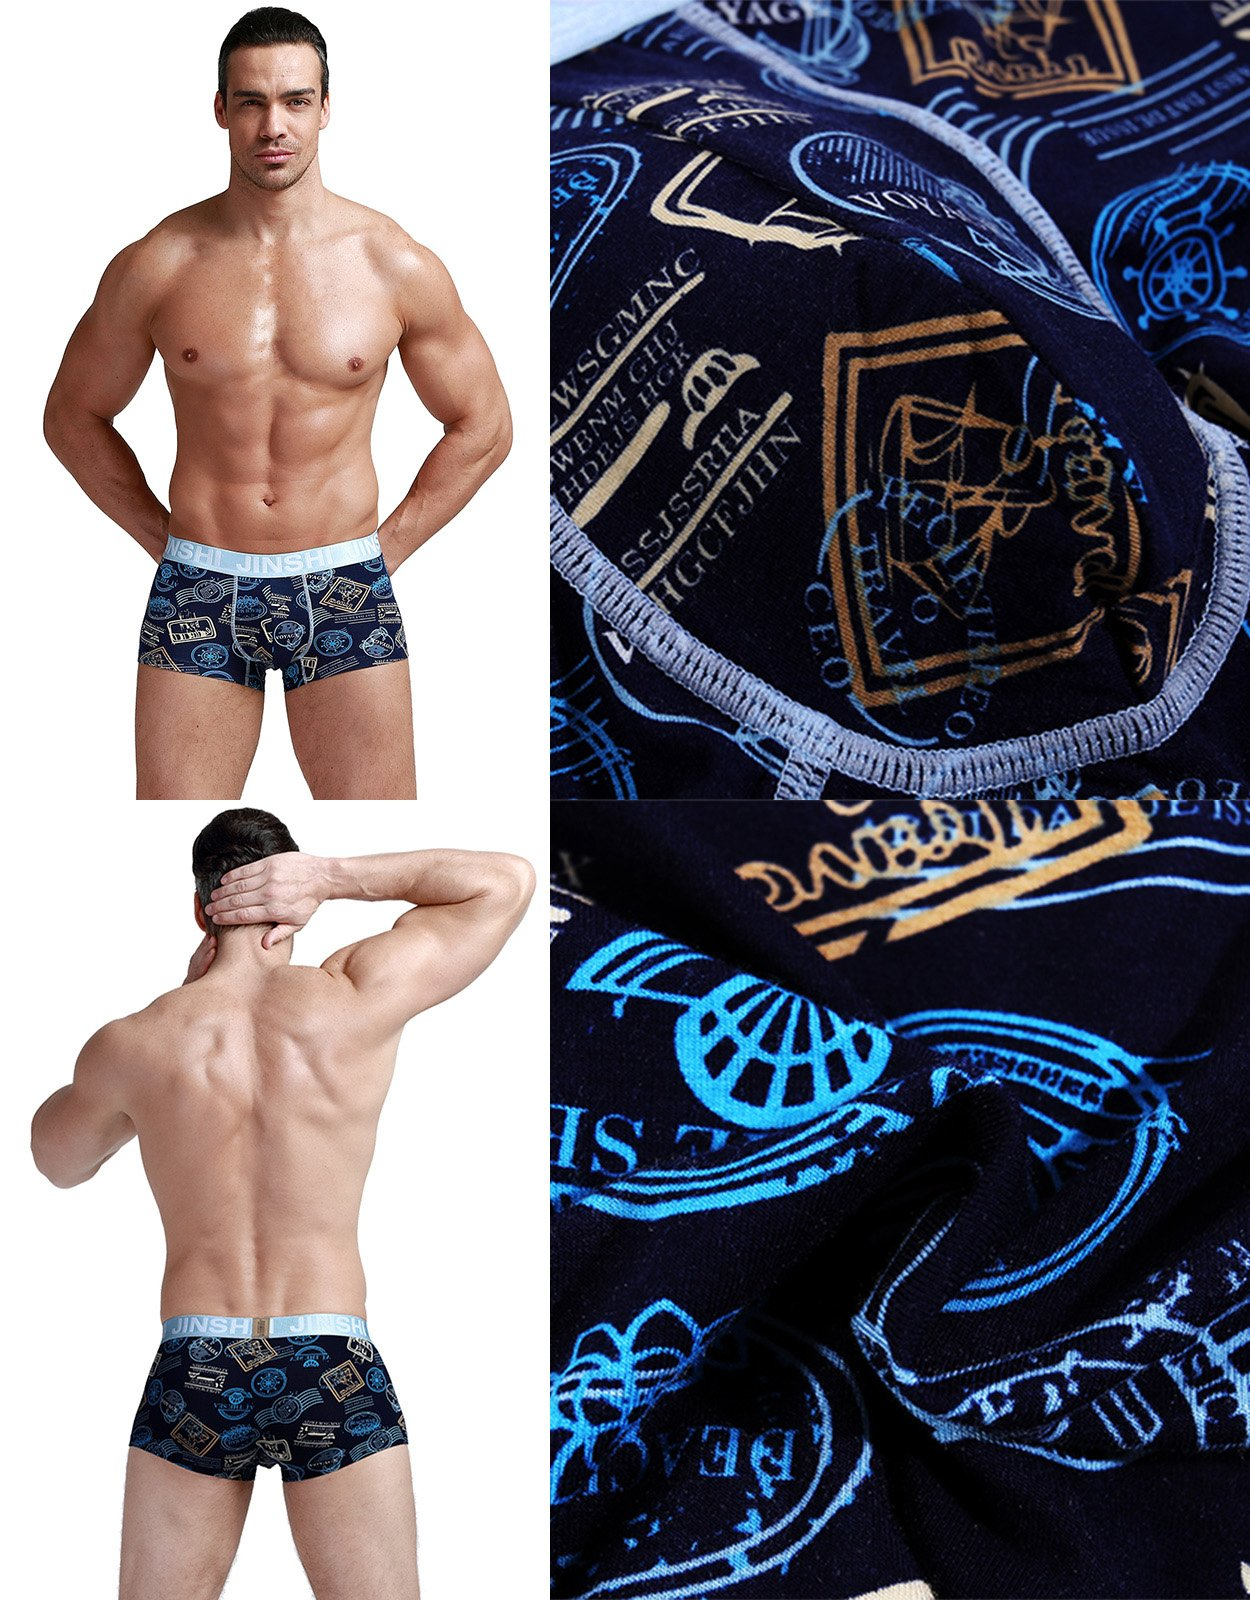 JINSHI Men's Boxer Briefs Athletic Soft Printed Bamboo Underwear 8 Pack 02 US XS/CN M by SHENGRUI (Image #6)